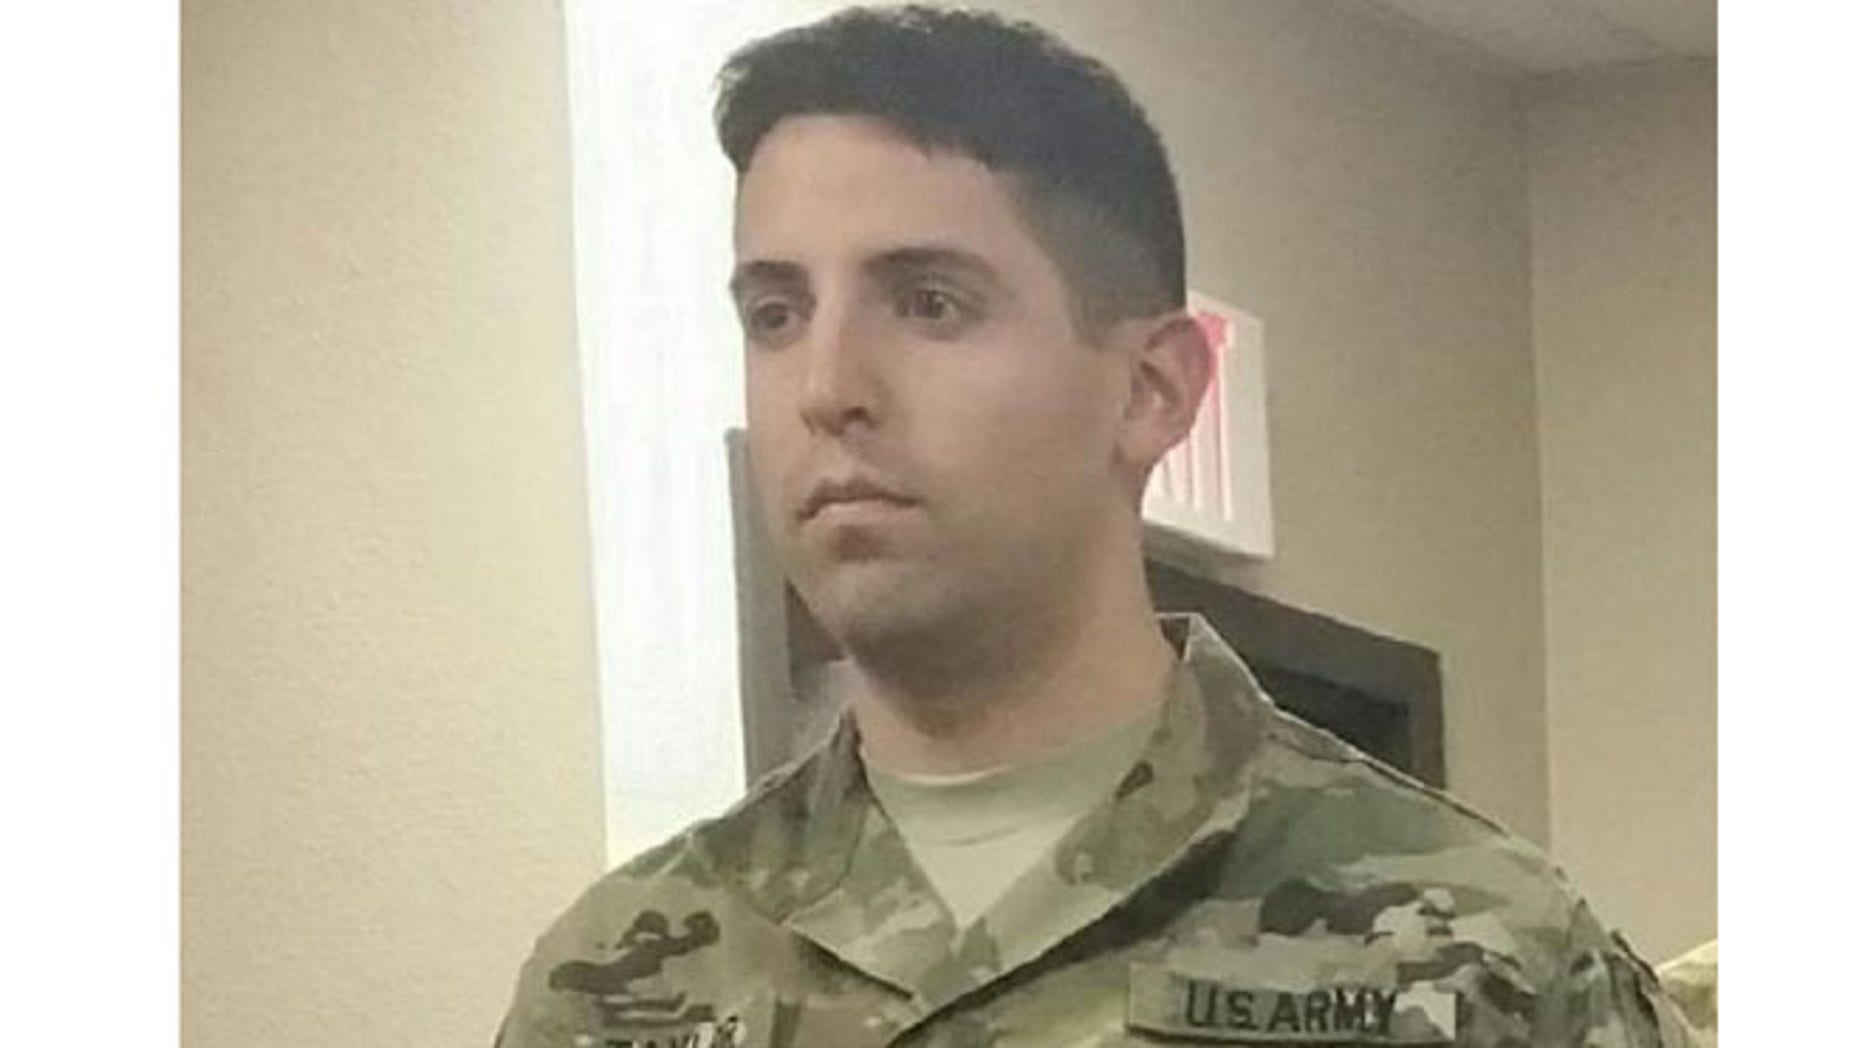 Sgt. Alex Mathew Dean Taylor, 23, was found dead at his job at Fort Hood in Texas.